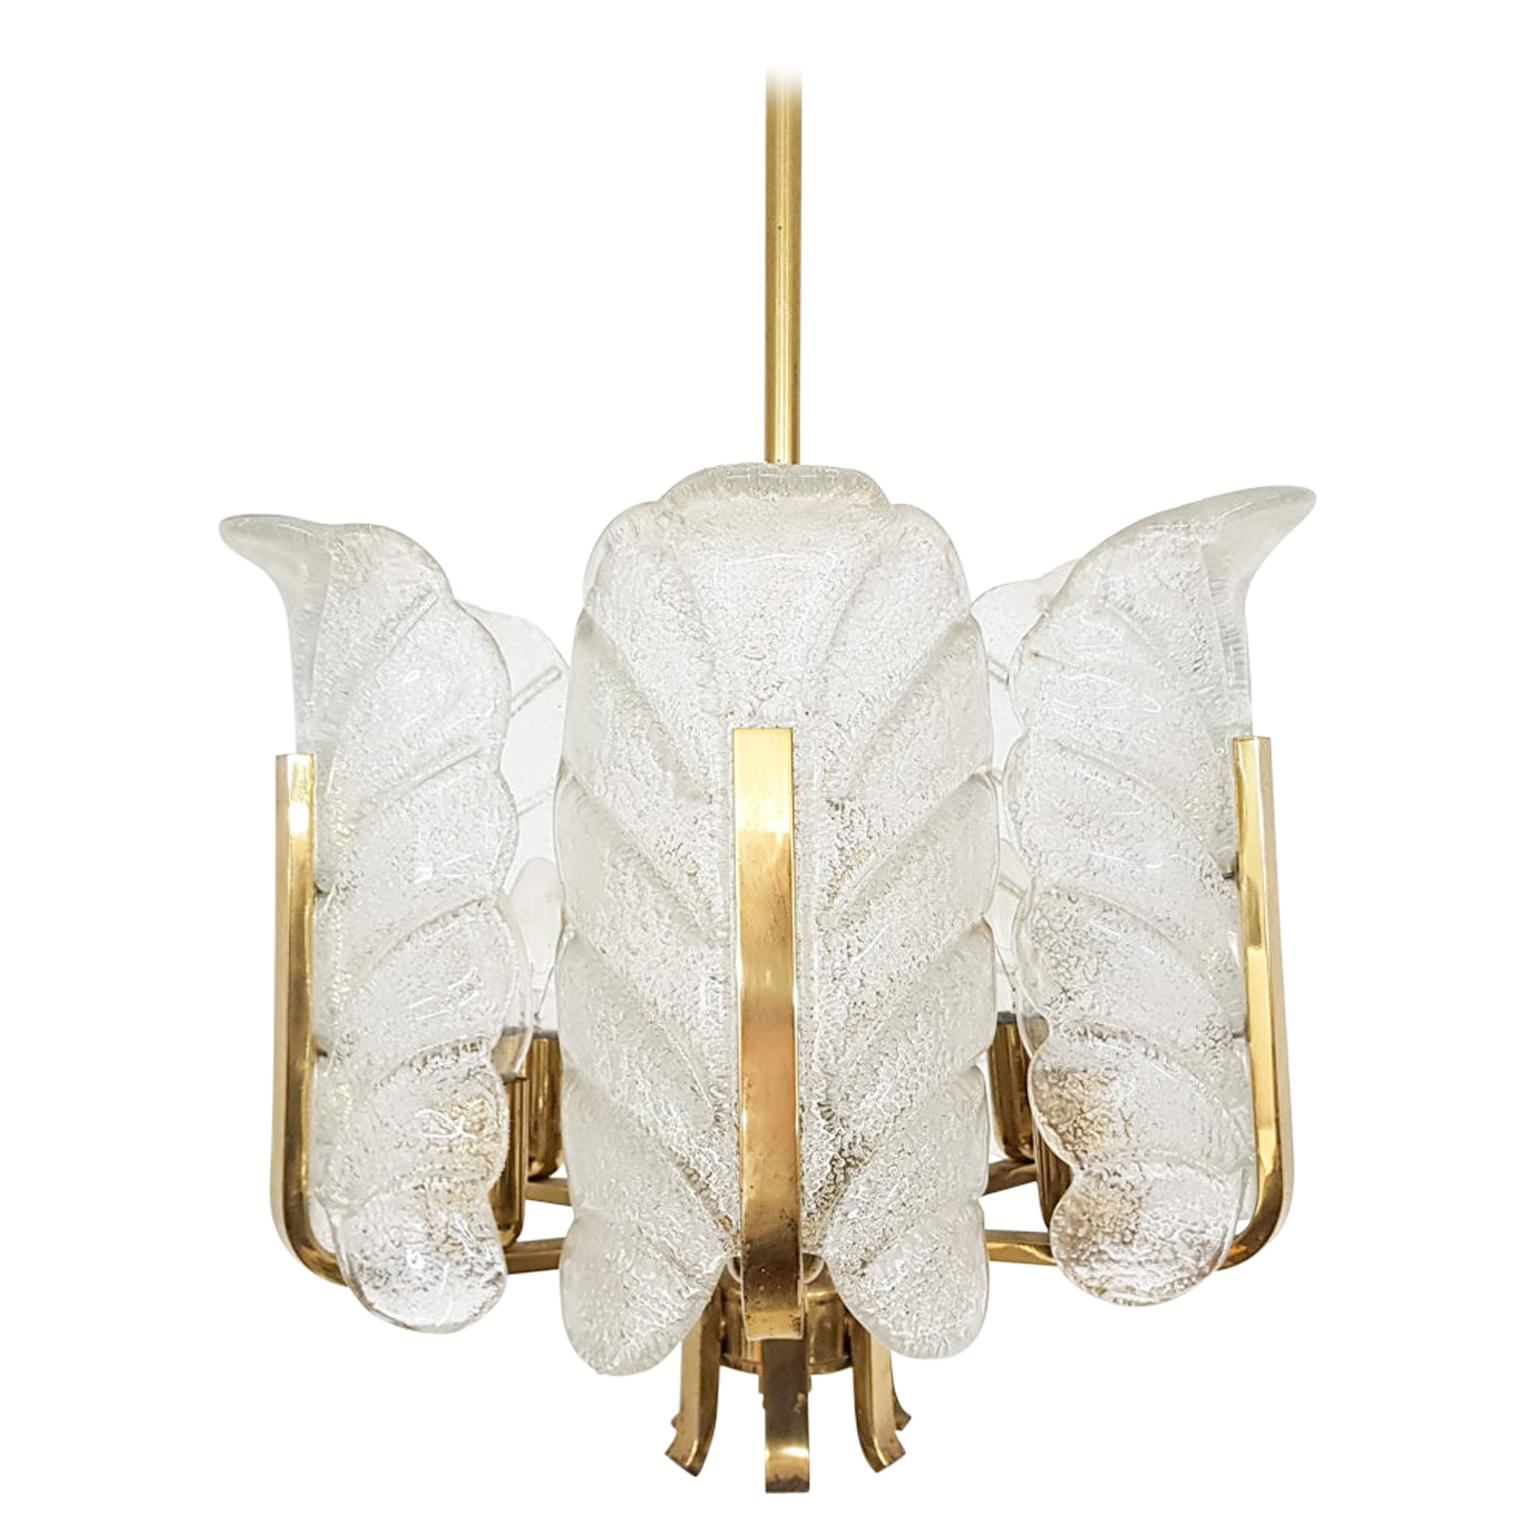 Carl Fagerlund for Orrefors Chandelier in Glass and Brass, Sweden, 1960s